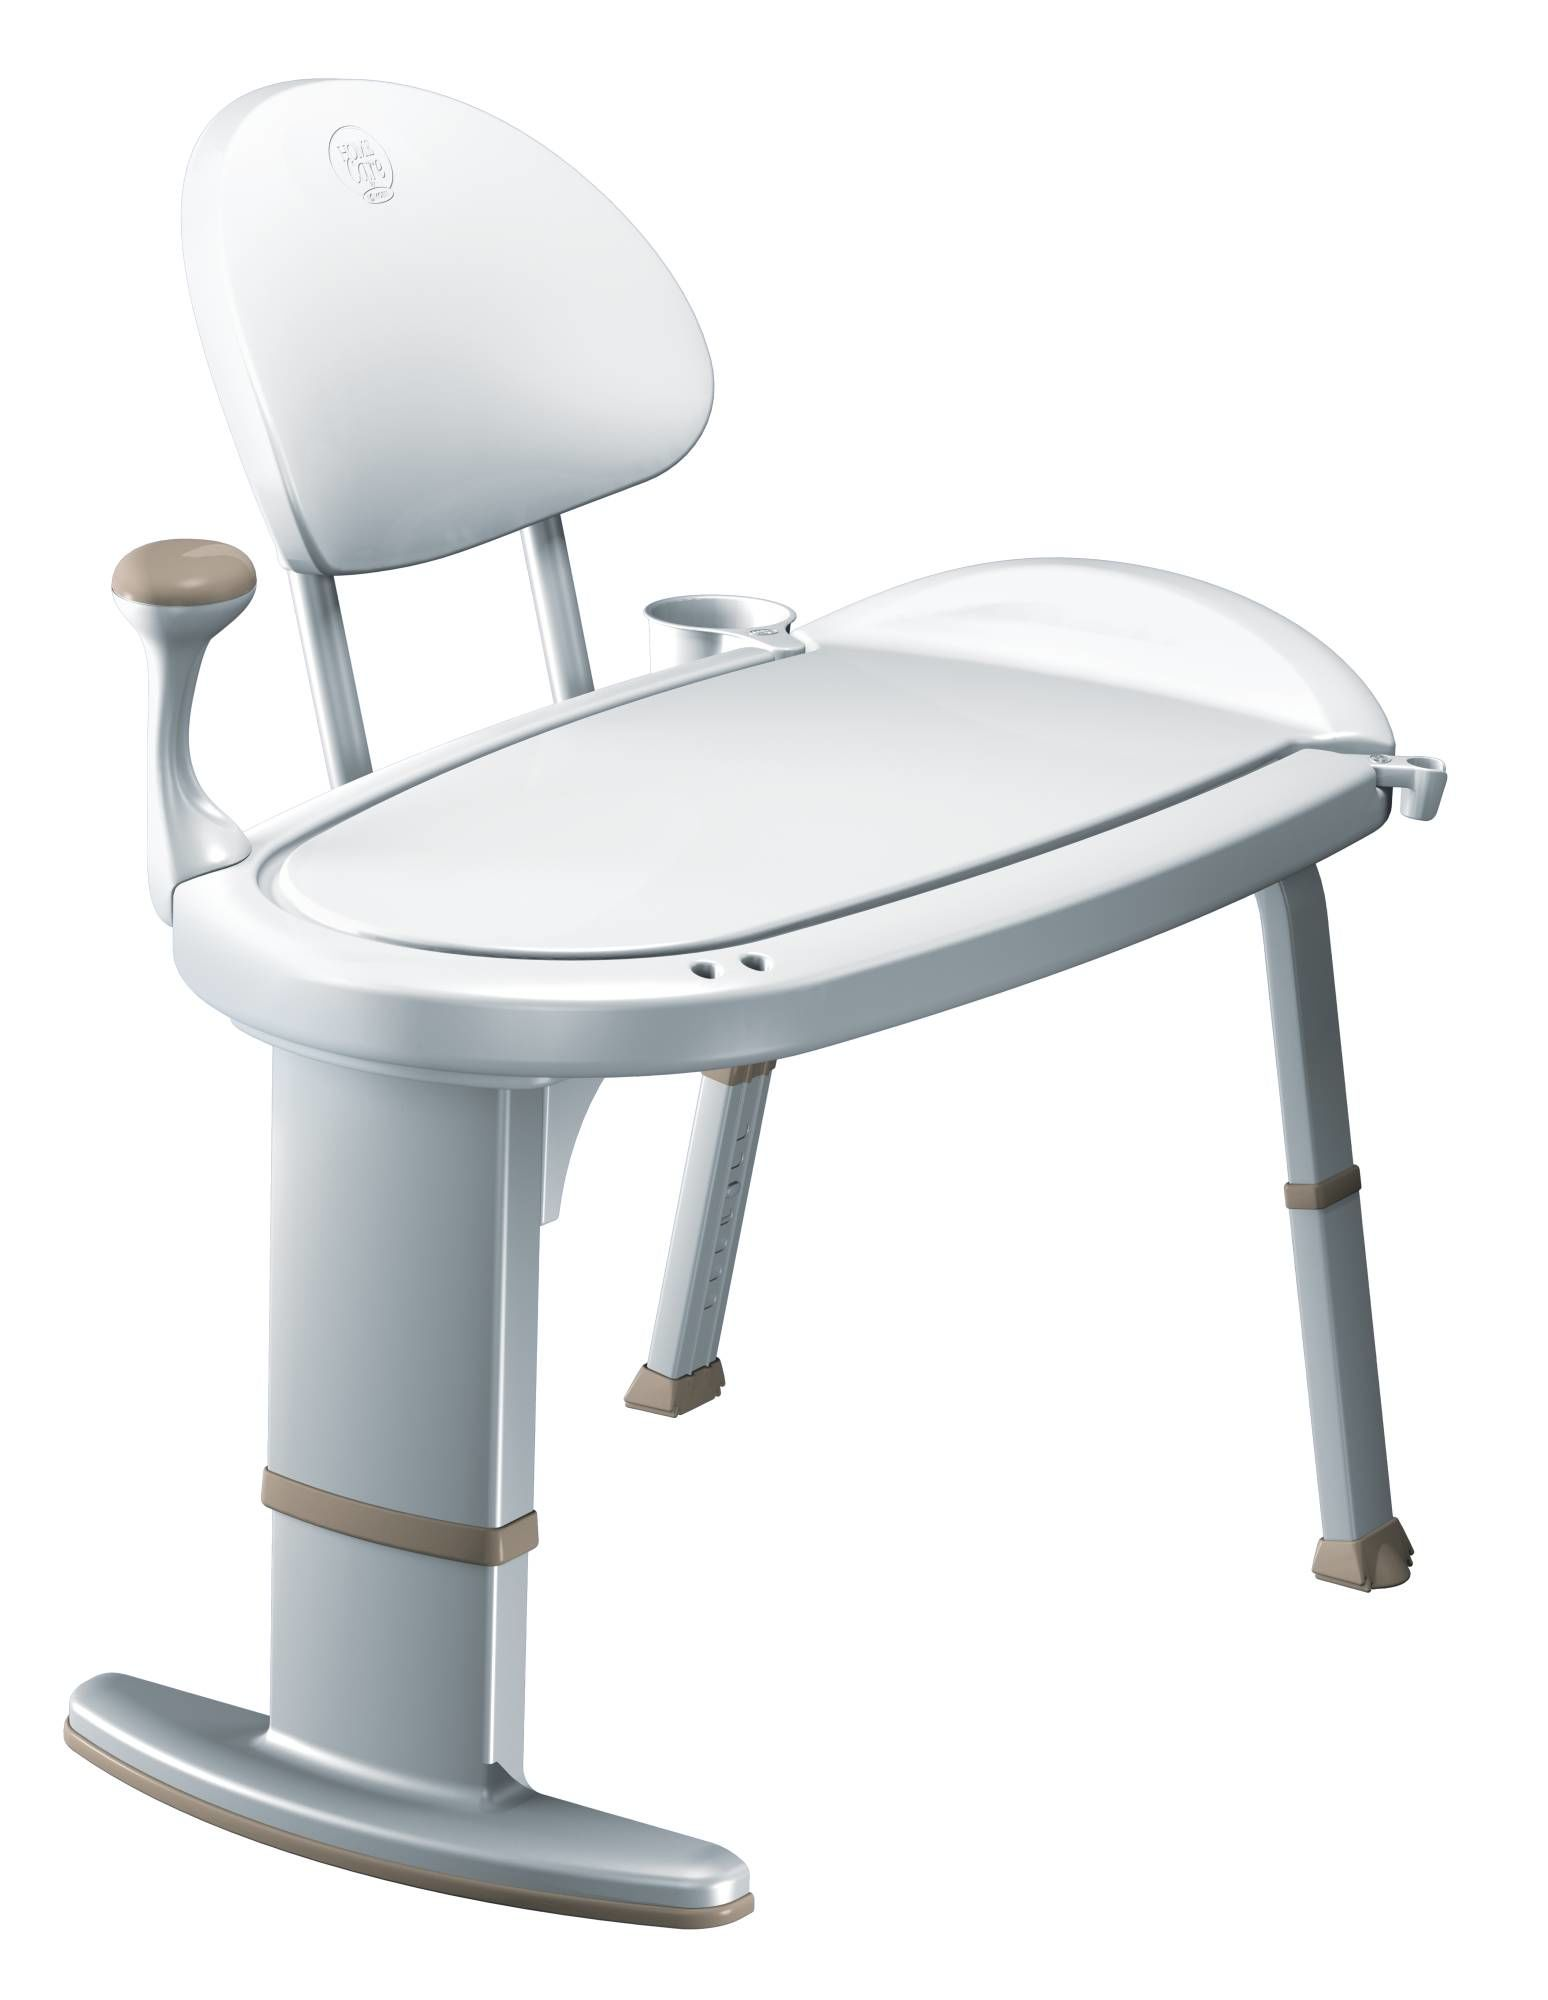 Lovely Moen CSIDN7105 Glacier Adjustable Transfer Bench From The Home Care  Collection   FaucetDirect.com